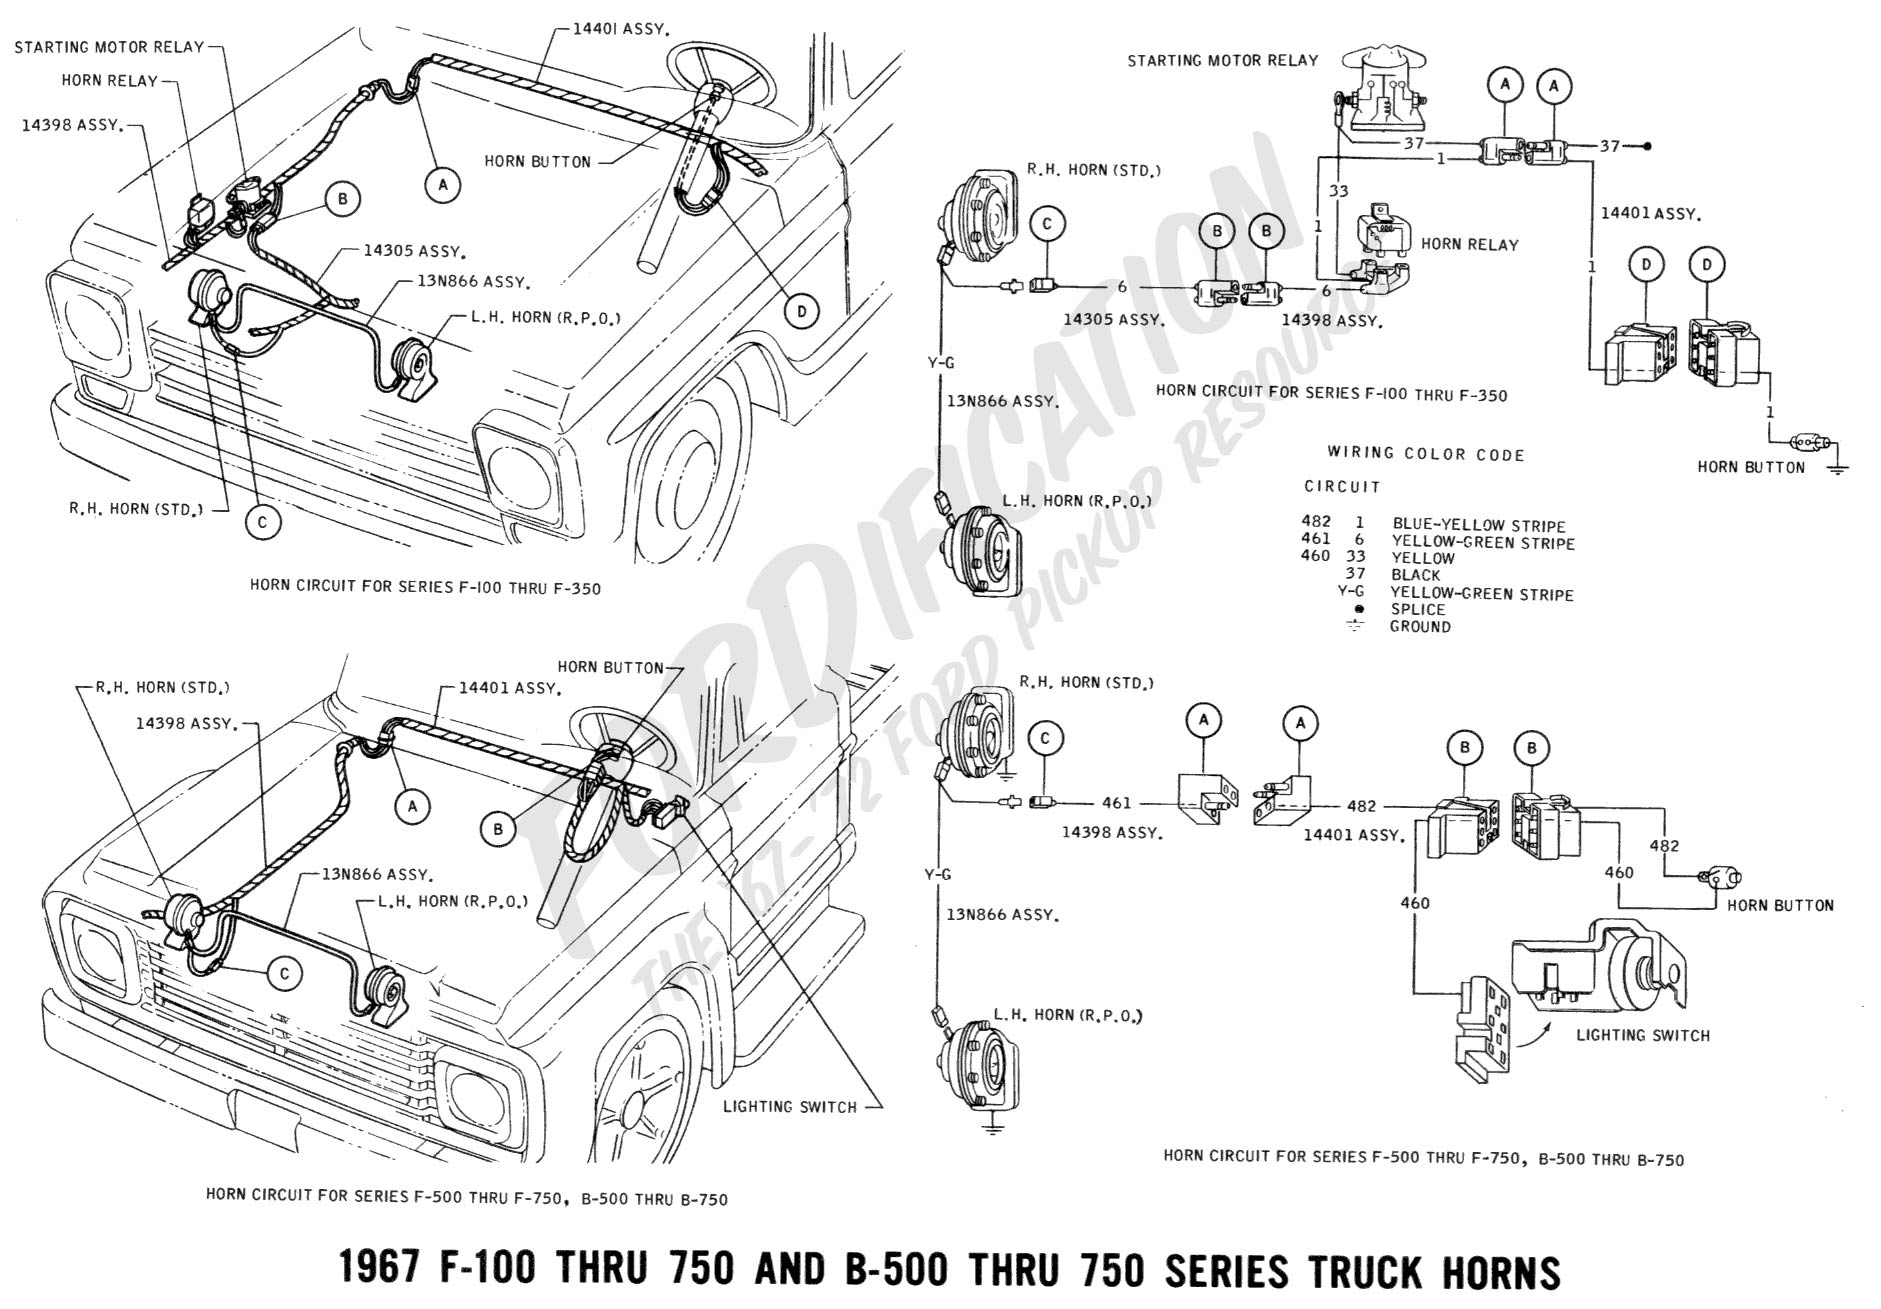 Ford F 150 Towing Package Wiring Diagram together with Ford F 150 Towing Package Wiring Diagram further Ford F750 Wiring Diagram furthermore Ford F750 Fuse Box Diagram also Schematics b. on 2012 f750 fuse box diagram